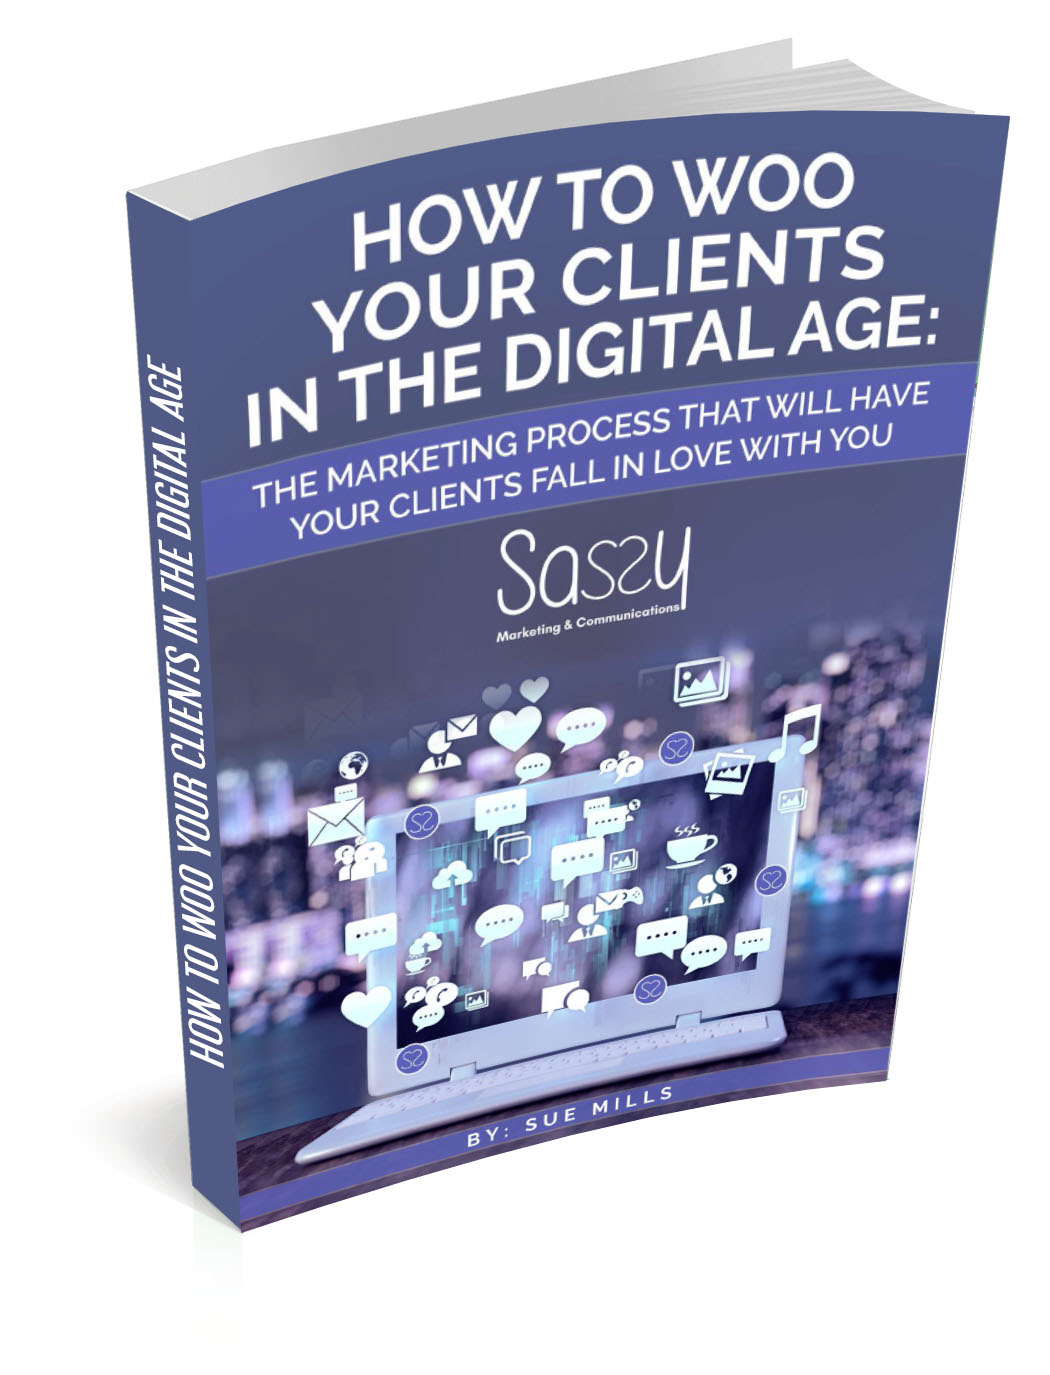 HOW TO WOO YOUR CLIENTS IN THE DIGITAL AGE